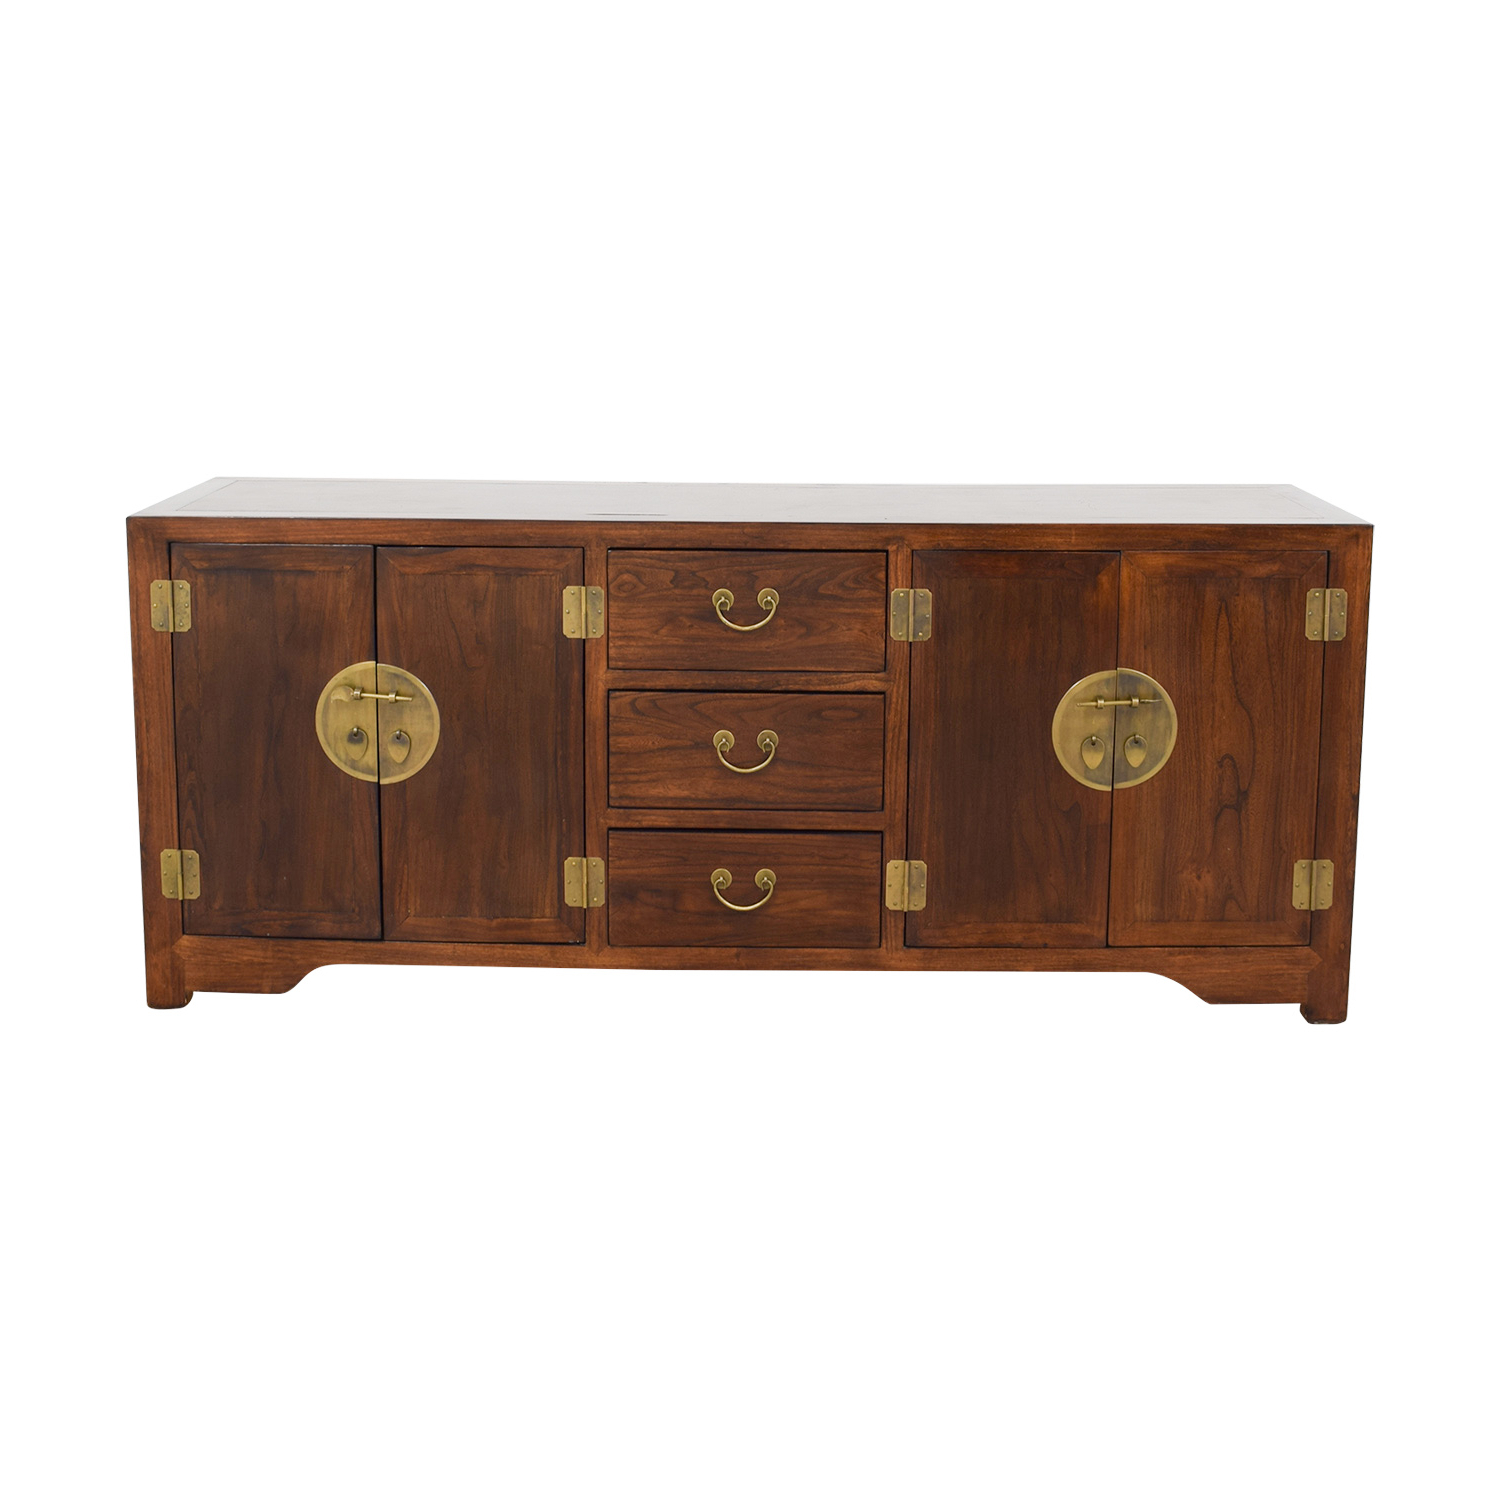 73% Off – Abc Carpet & Home Abc Carpet And Home Asian Inspired Wood Credenza / Storage Pertaining To Seven Seas Asian Sideboards (View 19 of 20)